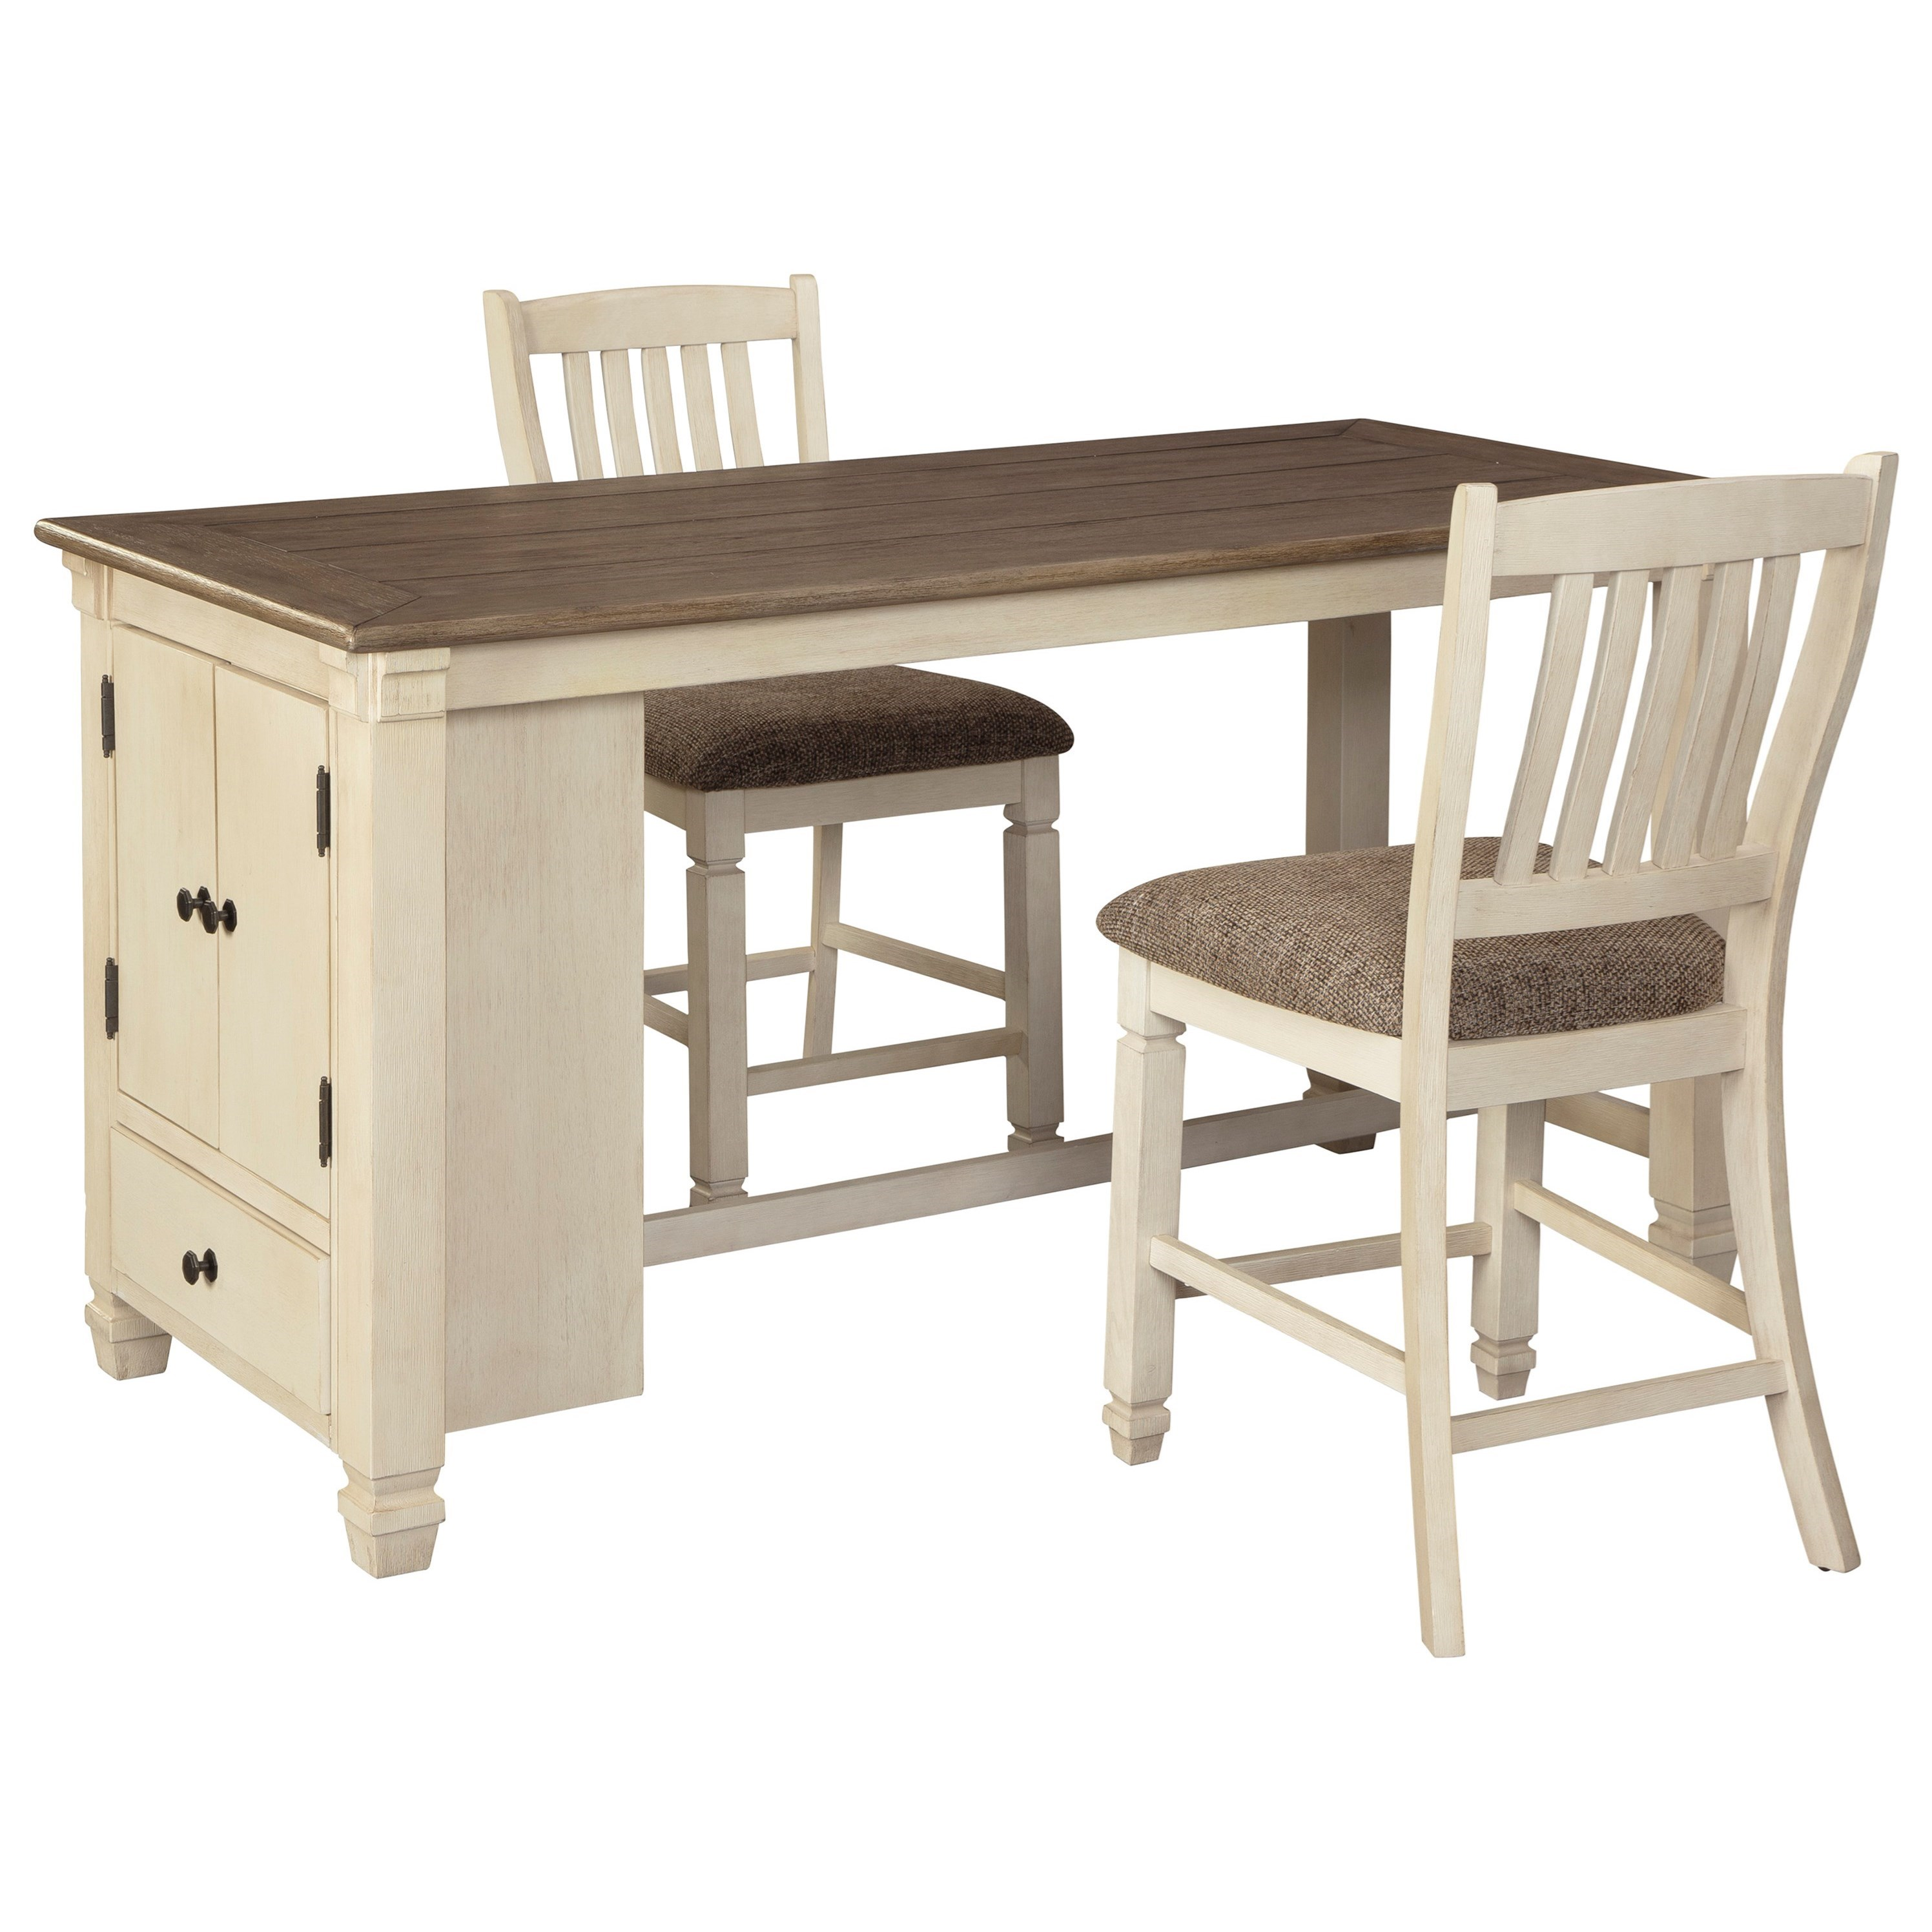 Bolanburg 3-Piece Rect. Dining Room Counter Table Set by Signature Design by Ashley at Zak's Warehouse Clearance Center